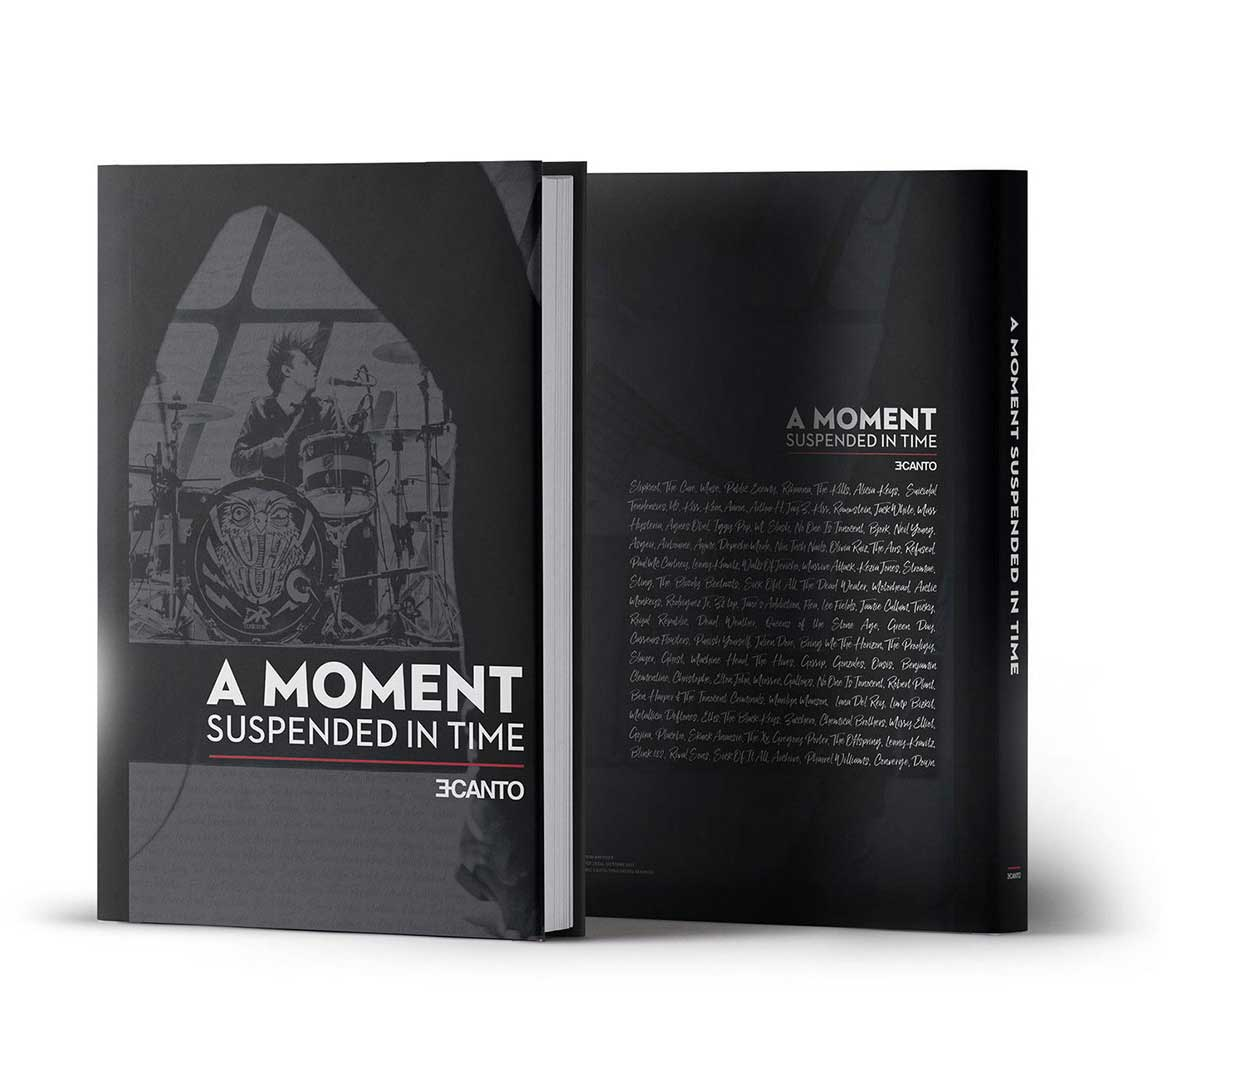 Livre A MOMENT SUSPENDED IN TIME